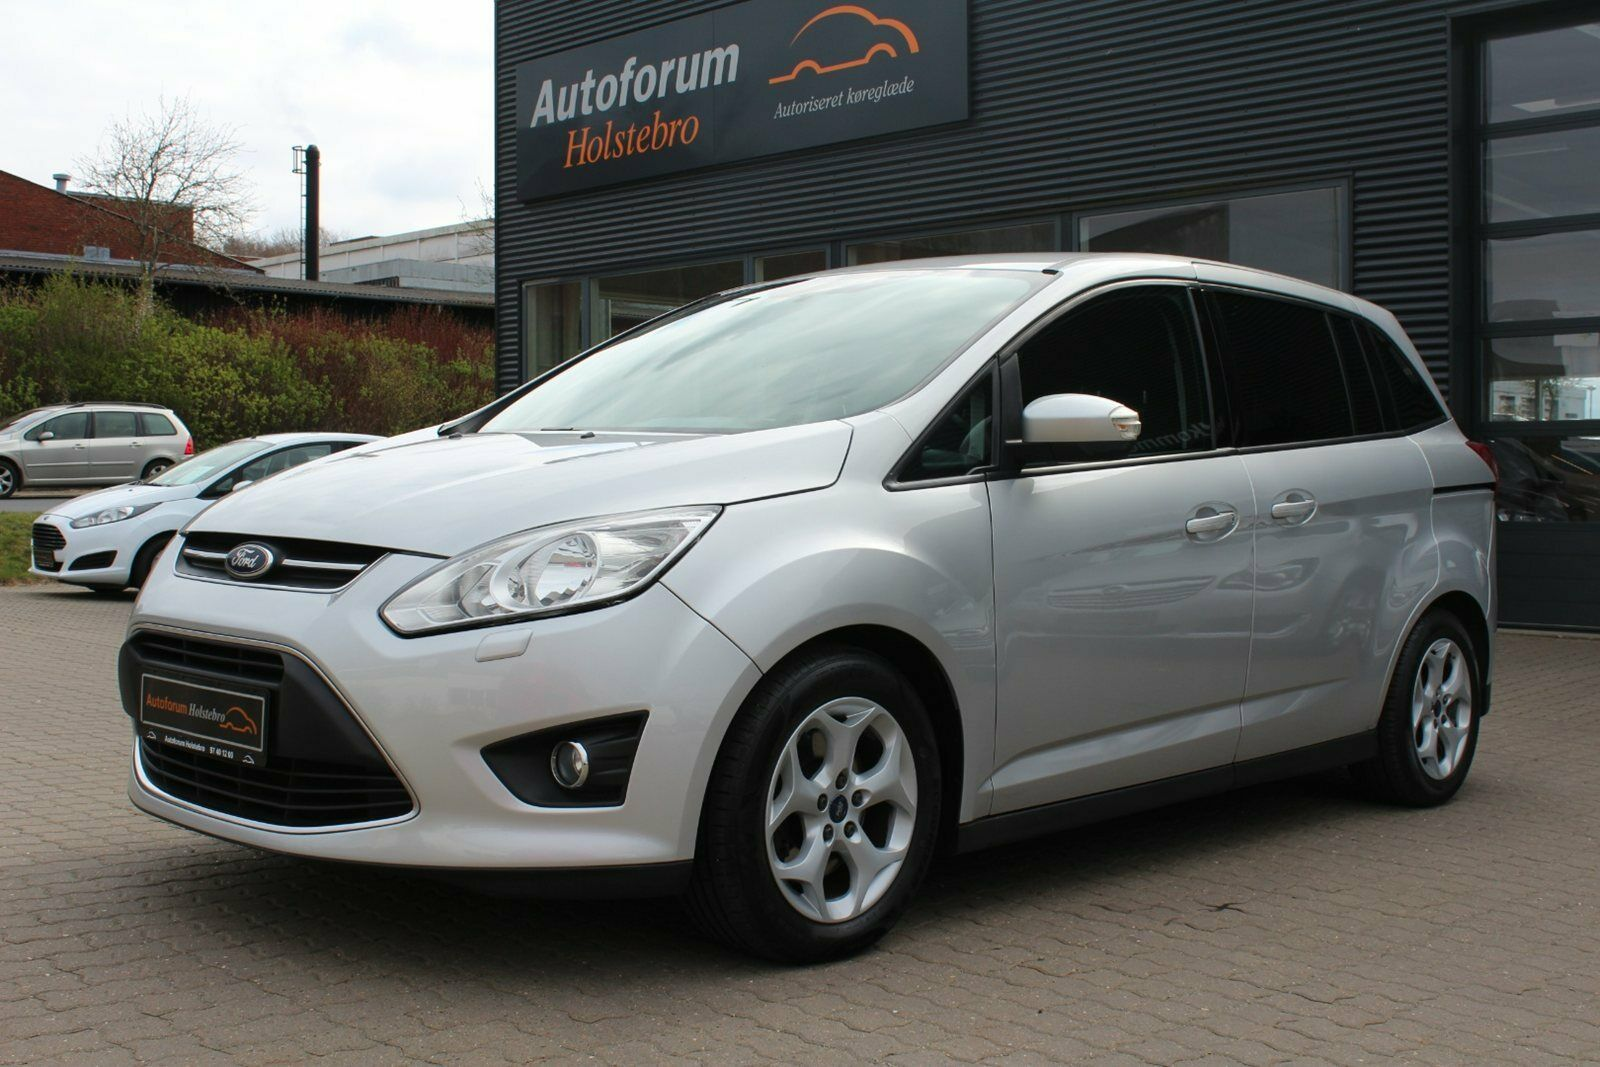 Ford Grand C-MAX 1,6 TDCi 115 Trend 5d